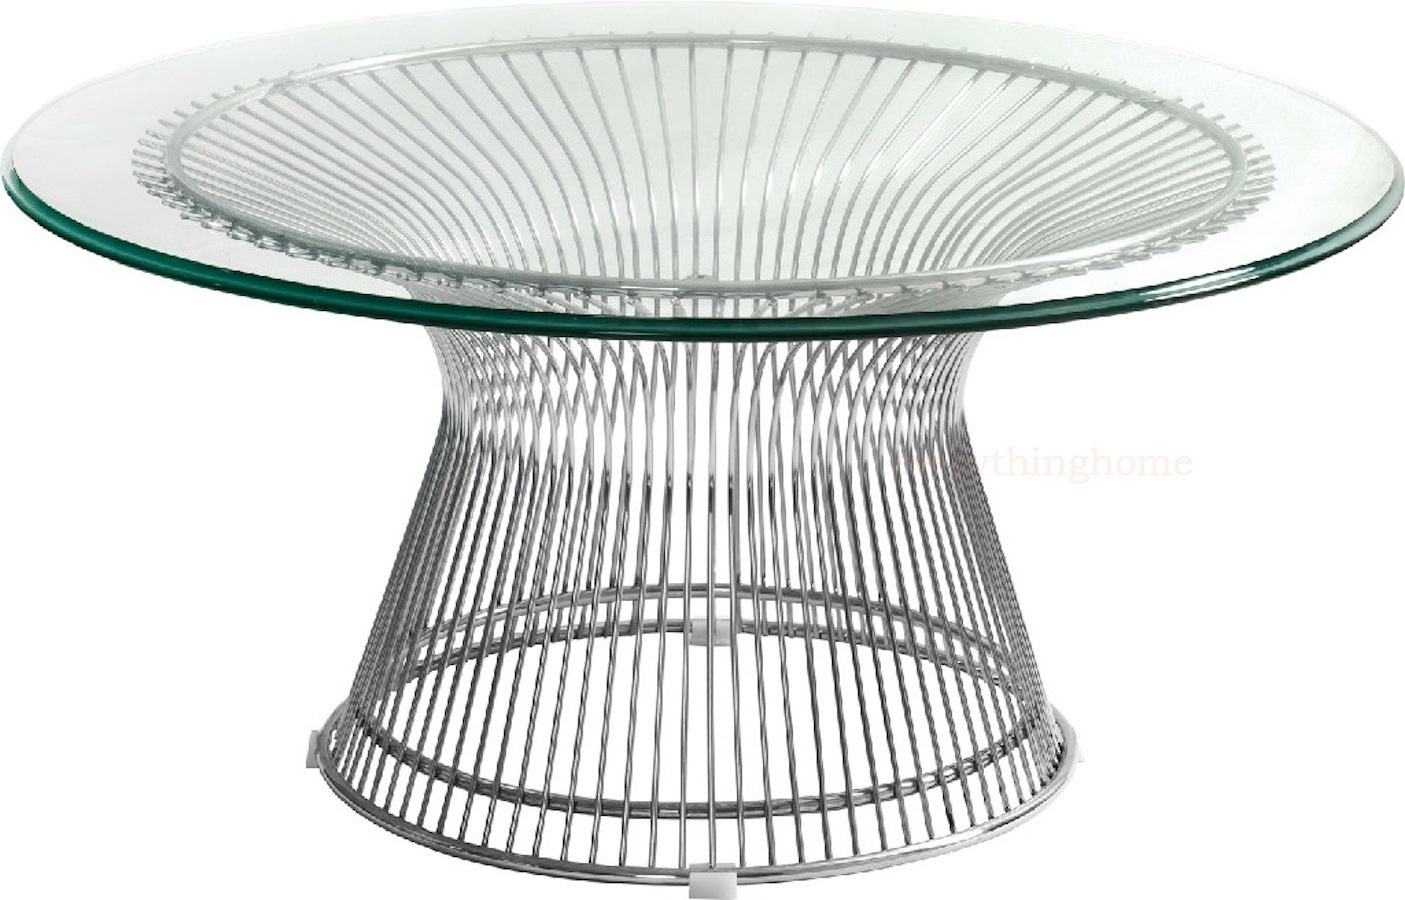 This Extraordinary Platner Style Gl Top Coffee Table Offers That Clic Mid Century Modern Feel S Sure To Impress And Sweep You Away Back In Time